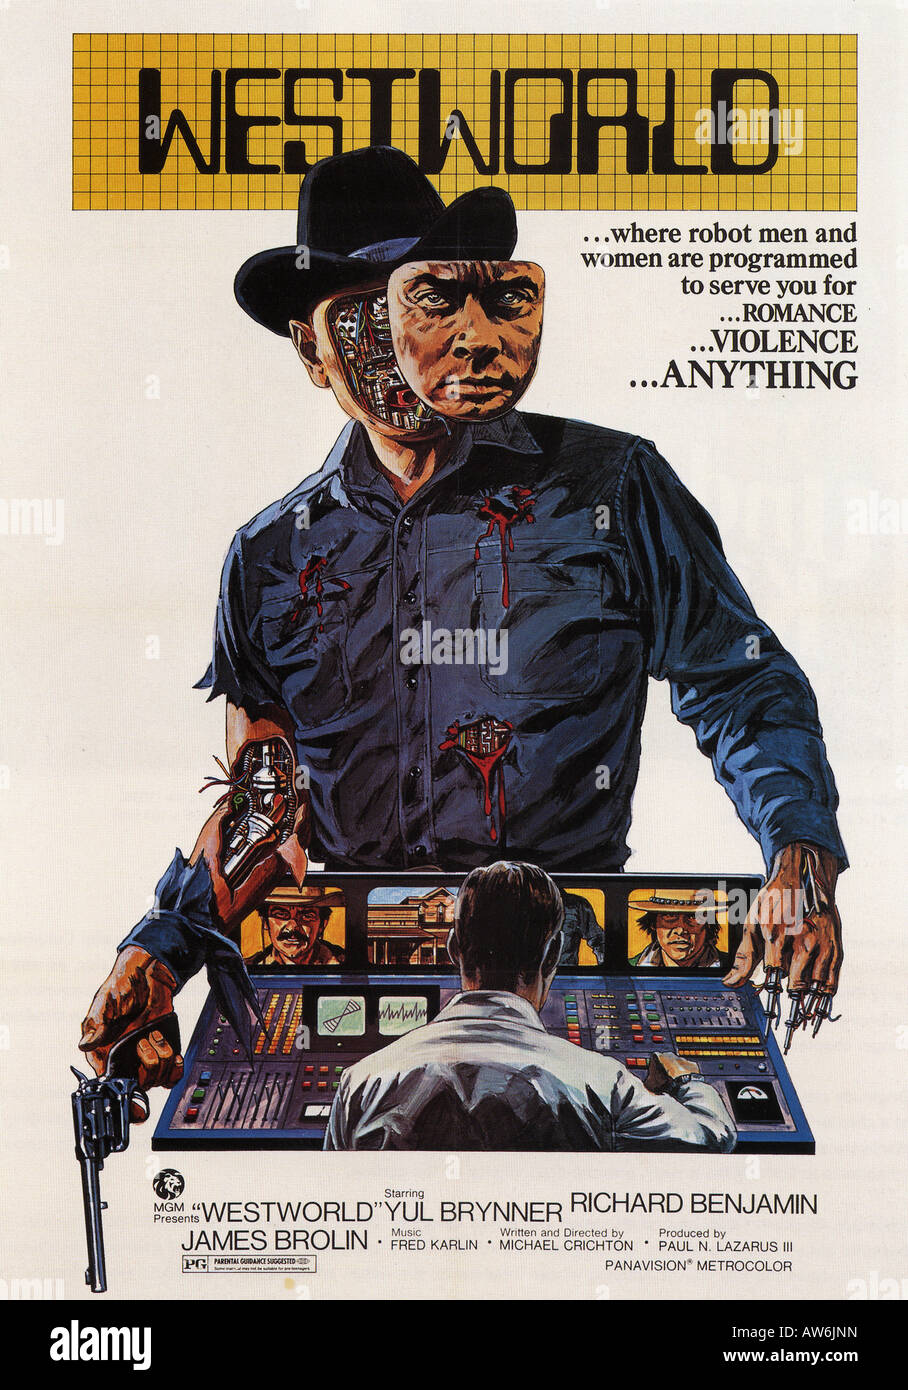 westworld poster for 1973 mgm film with yul brynner